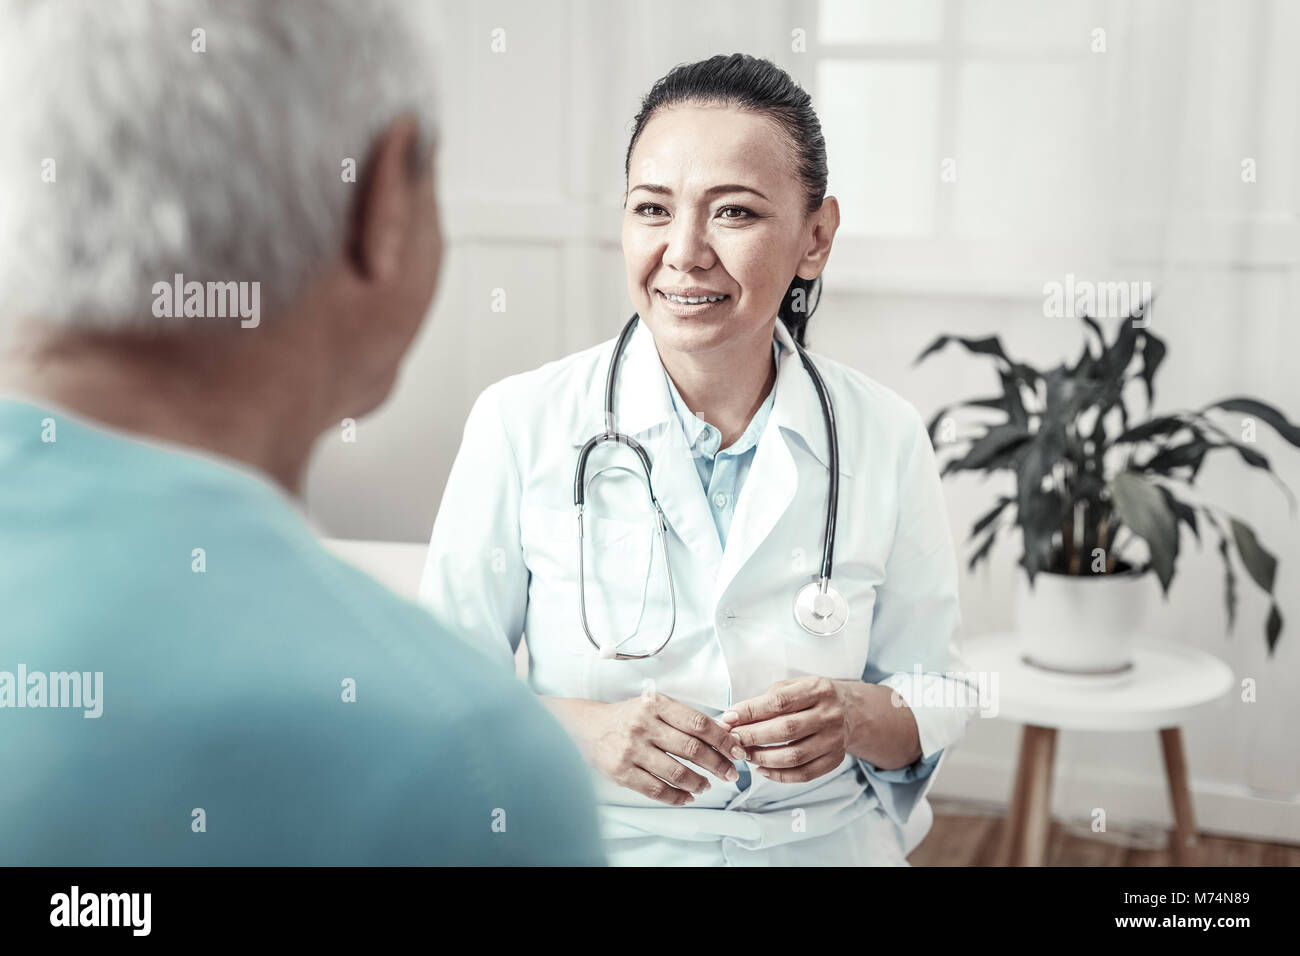 Skilled cute nurse smiling and having consultation. - Stock Image